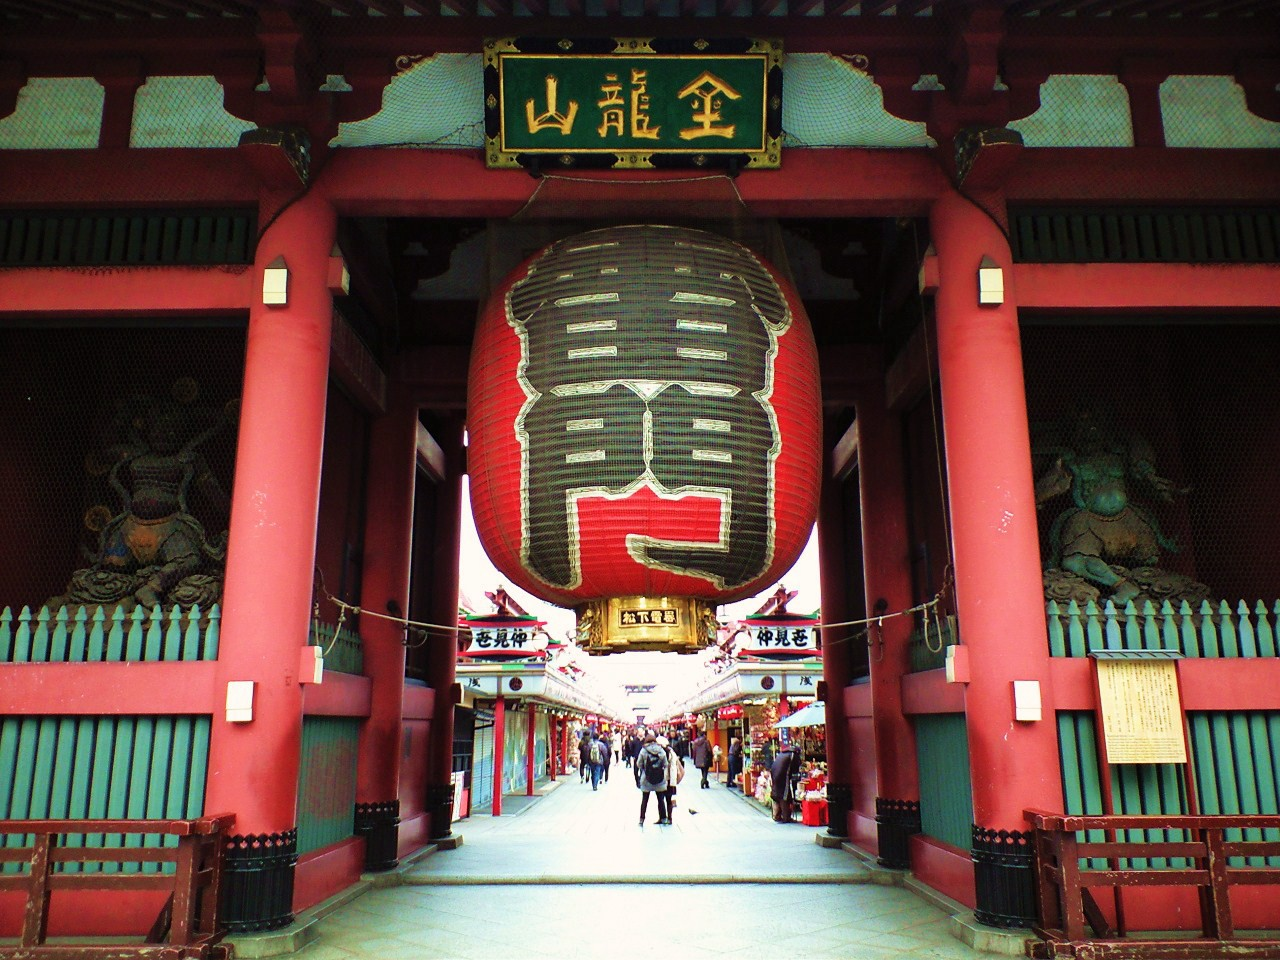 The entrance of Asakusa Sensoji, Kaminarimon Gate